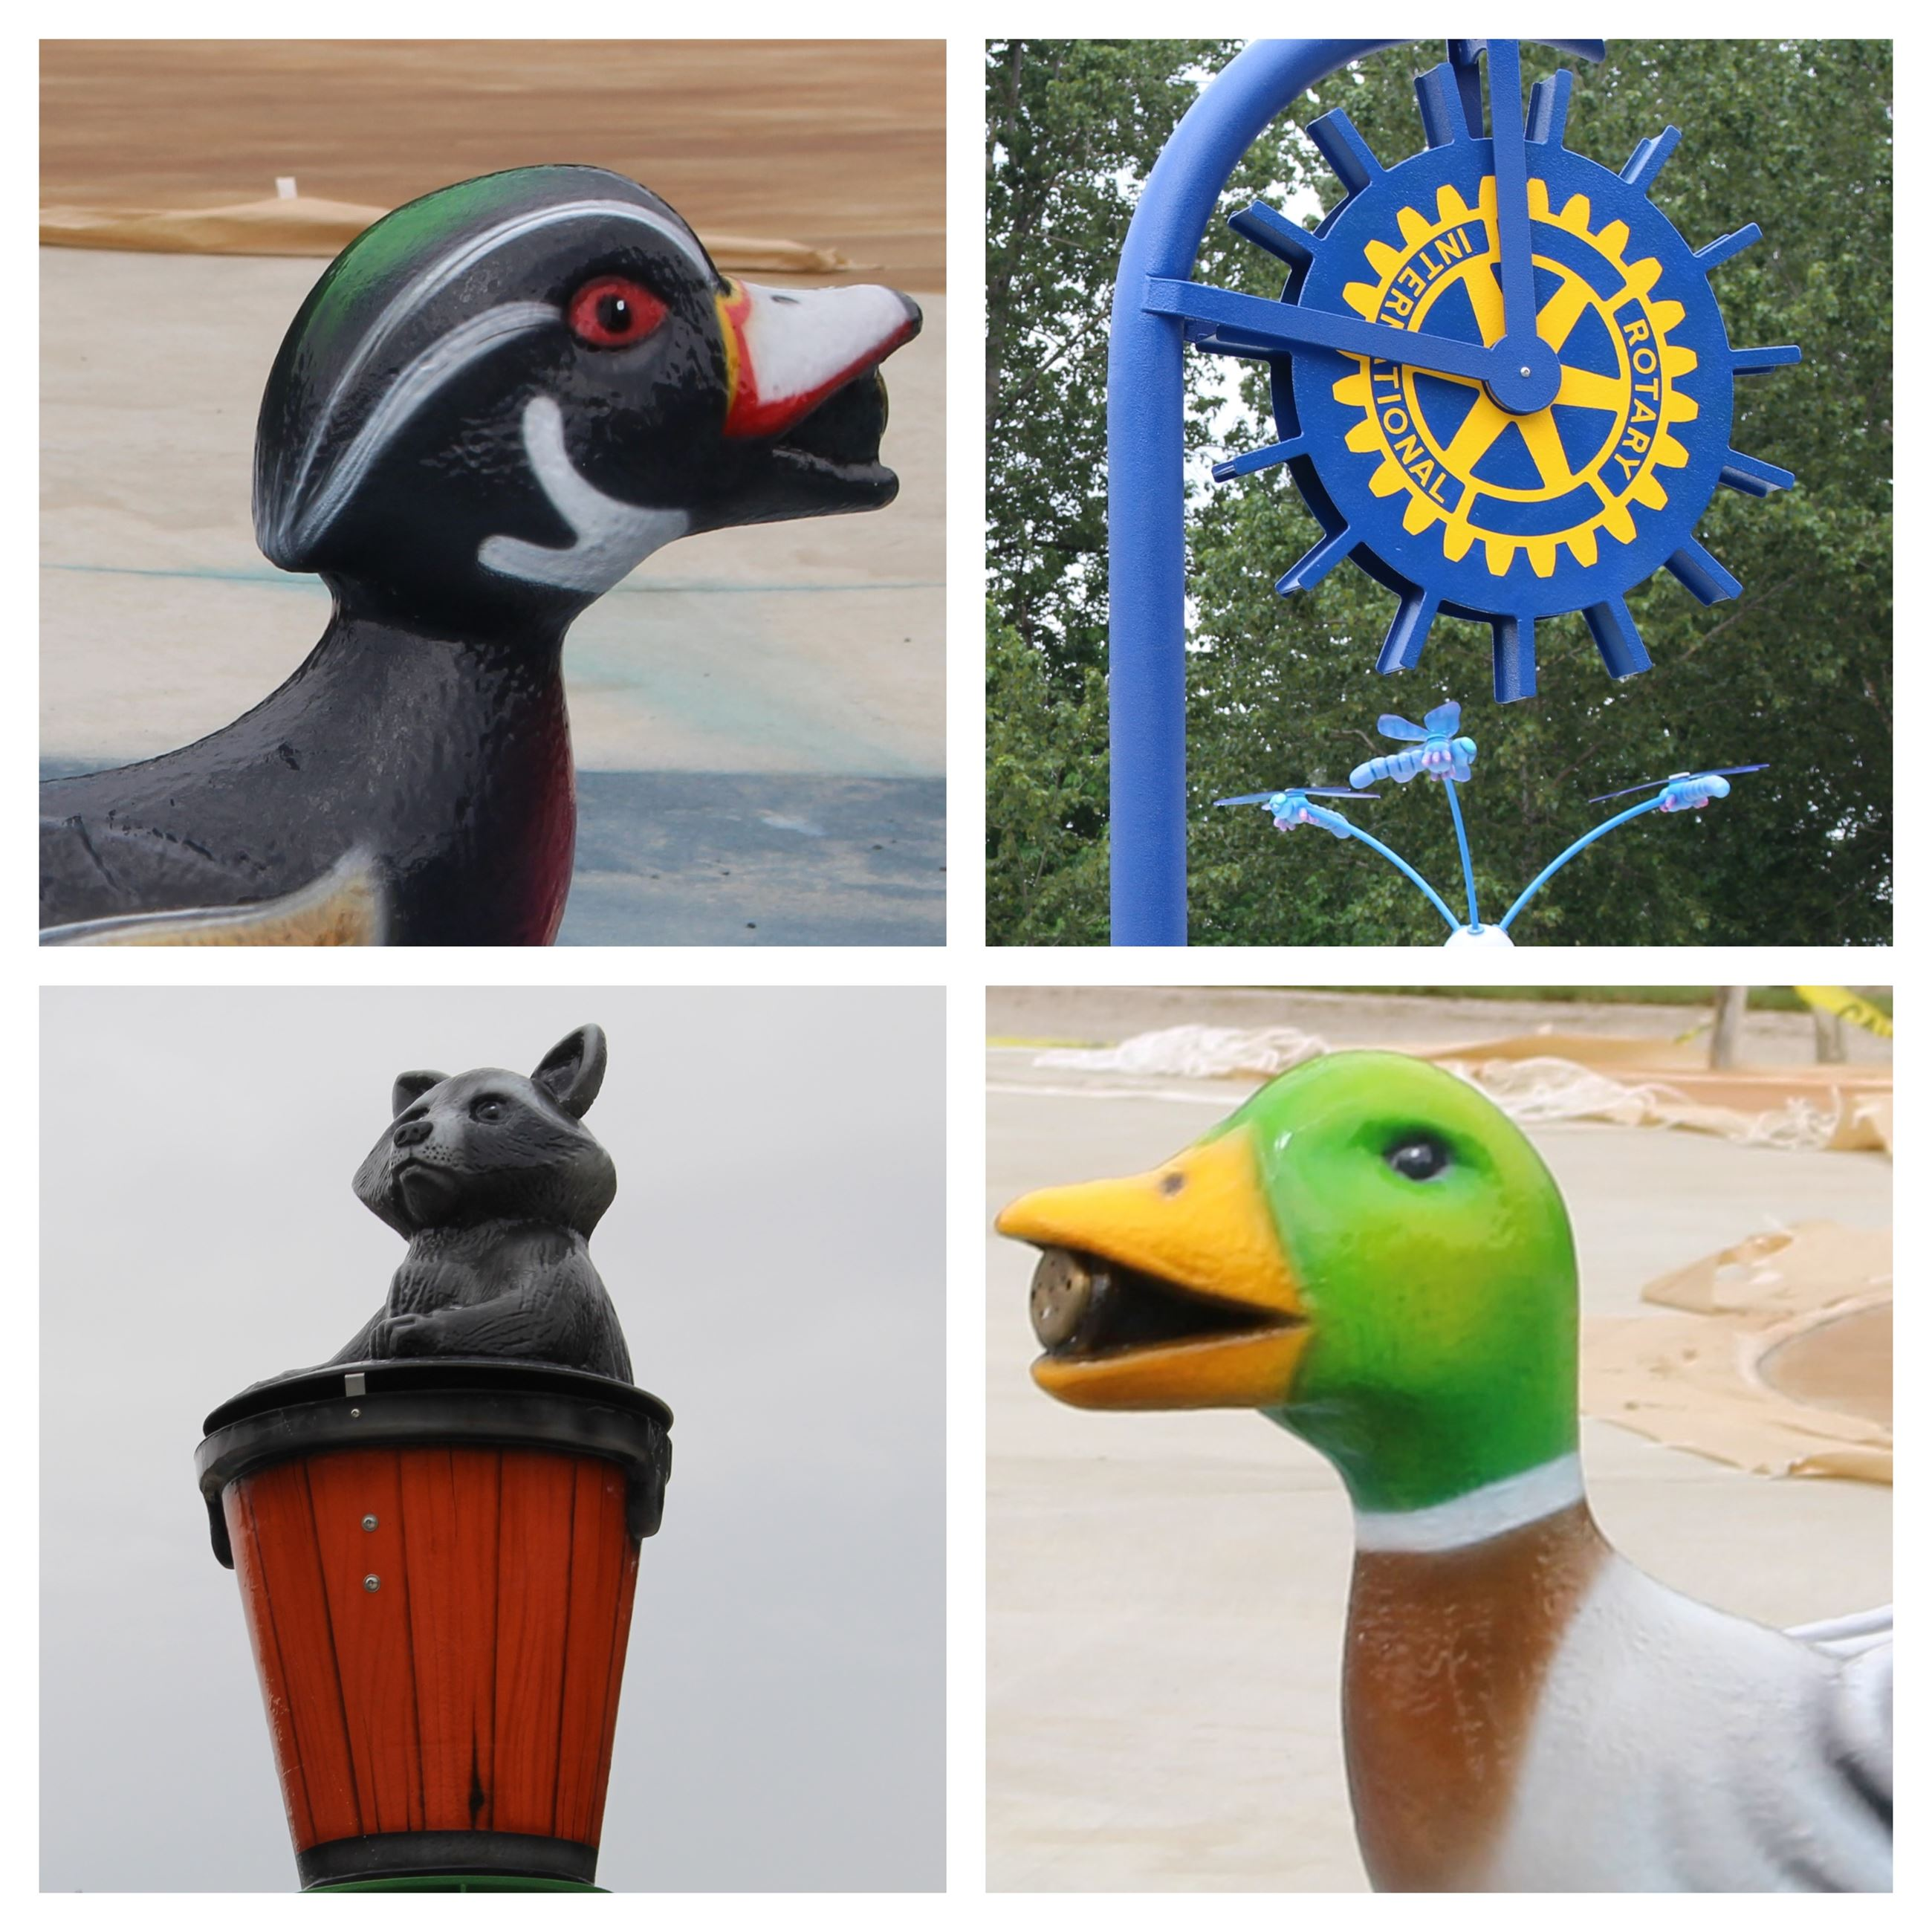 Photos of splash pad toys: woodland duck, water wheel with Rotary logo, raccoon in wood barrel, mall